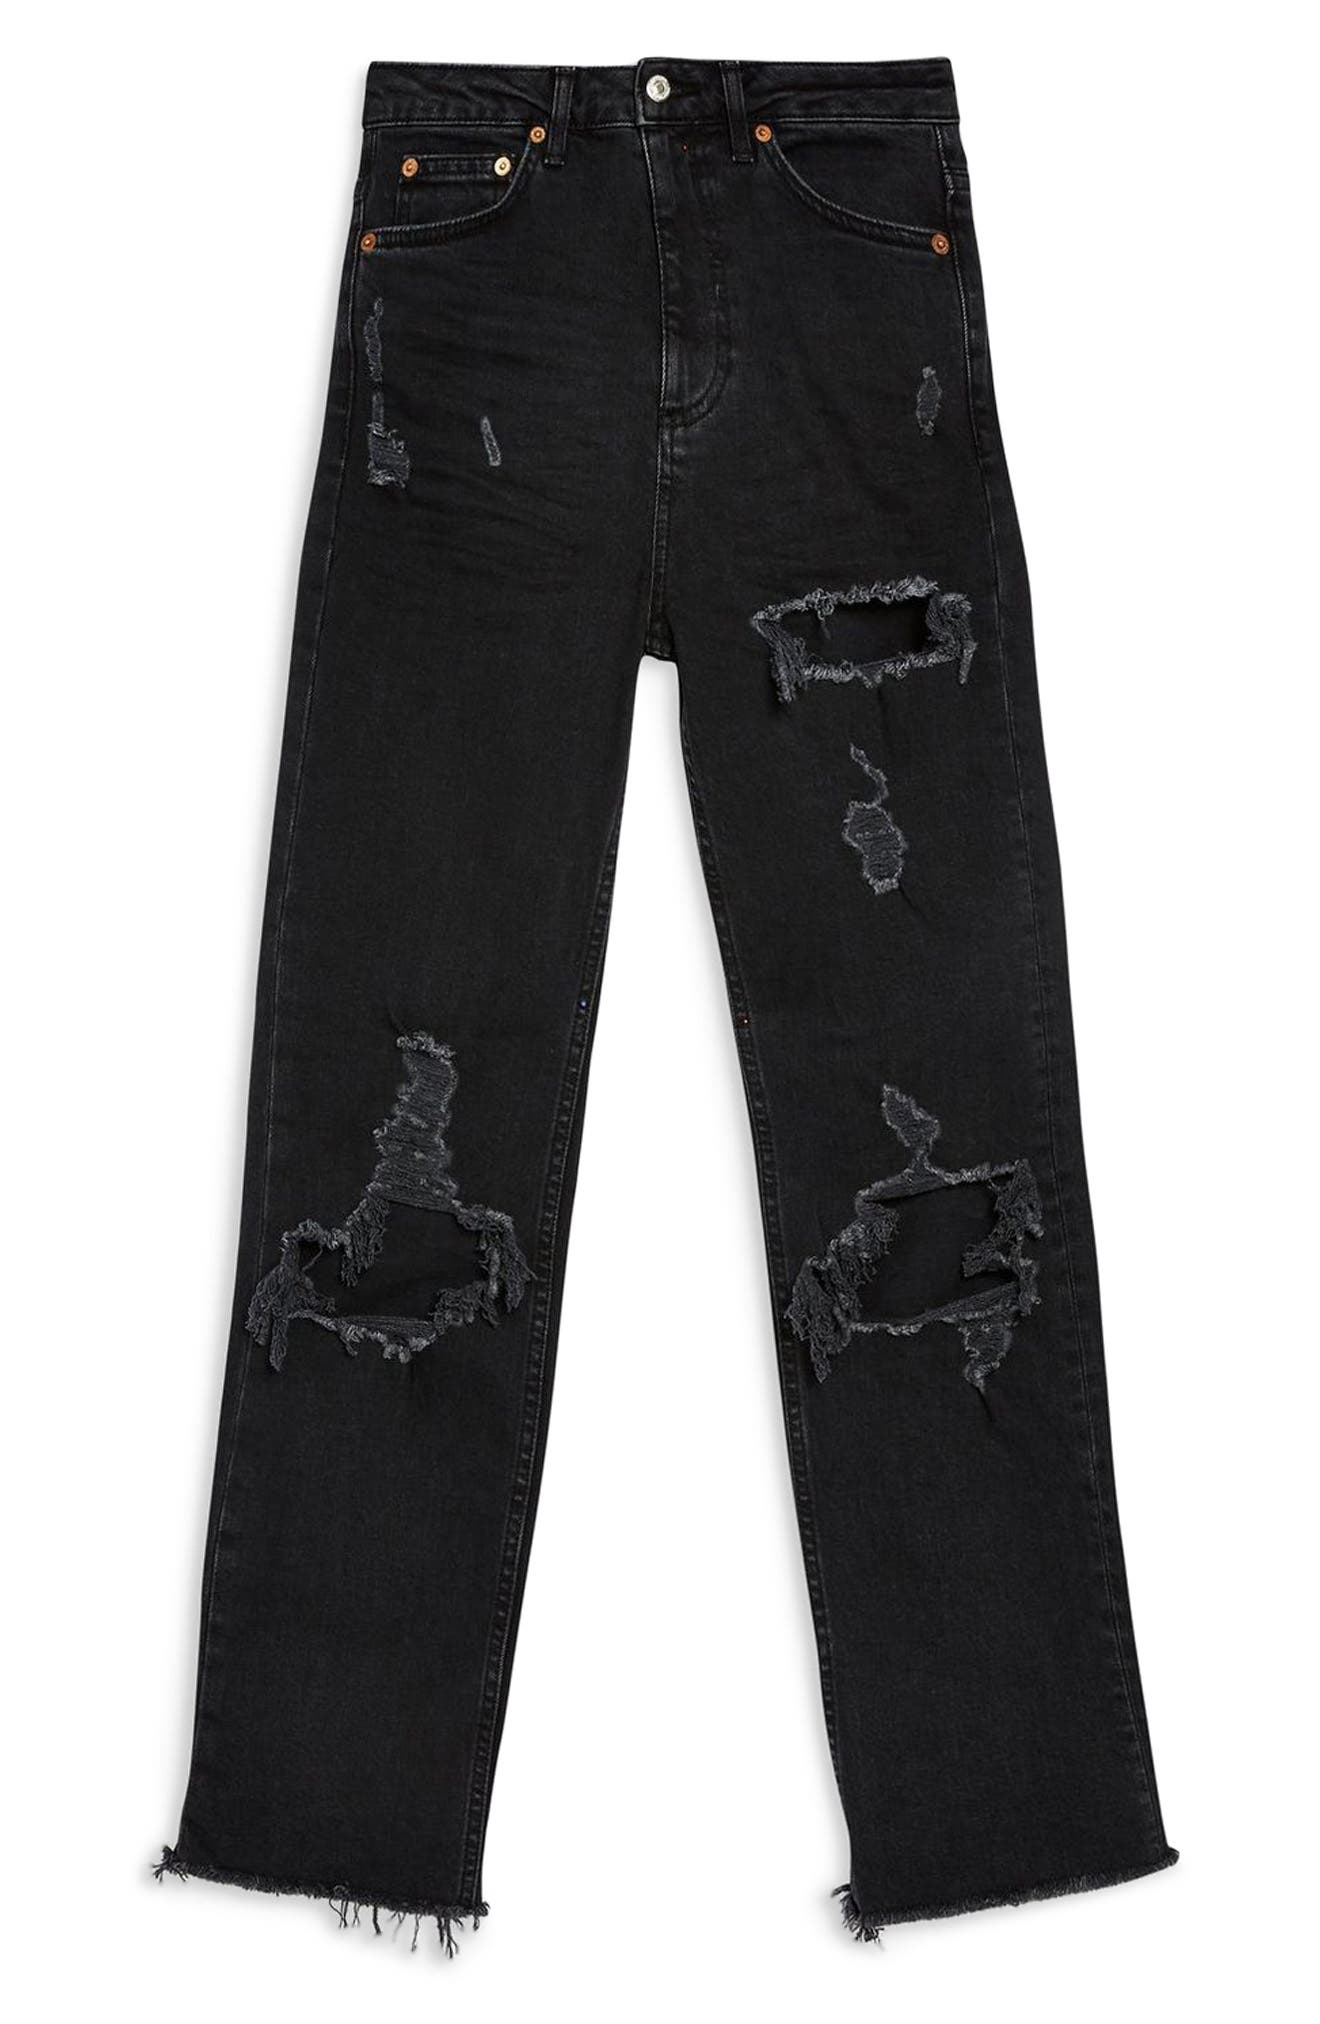 TOPSHOP, Ripped Straight Jeans, Alternate thumbnail 4, color, WASHED BLACK